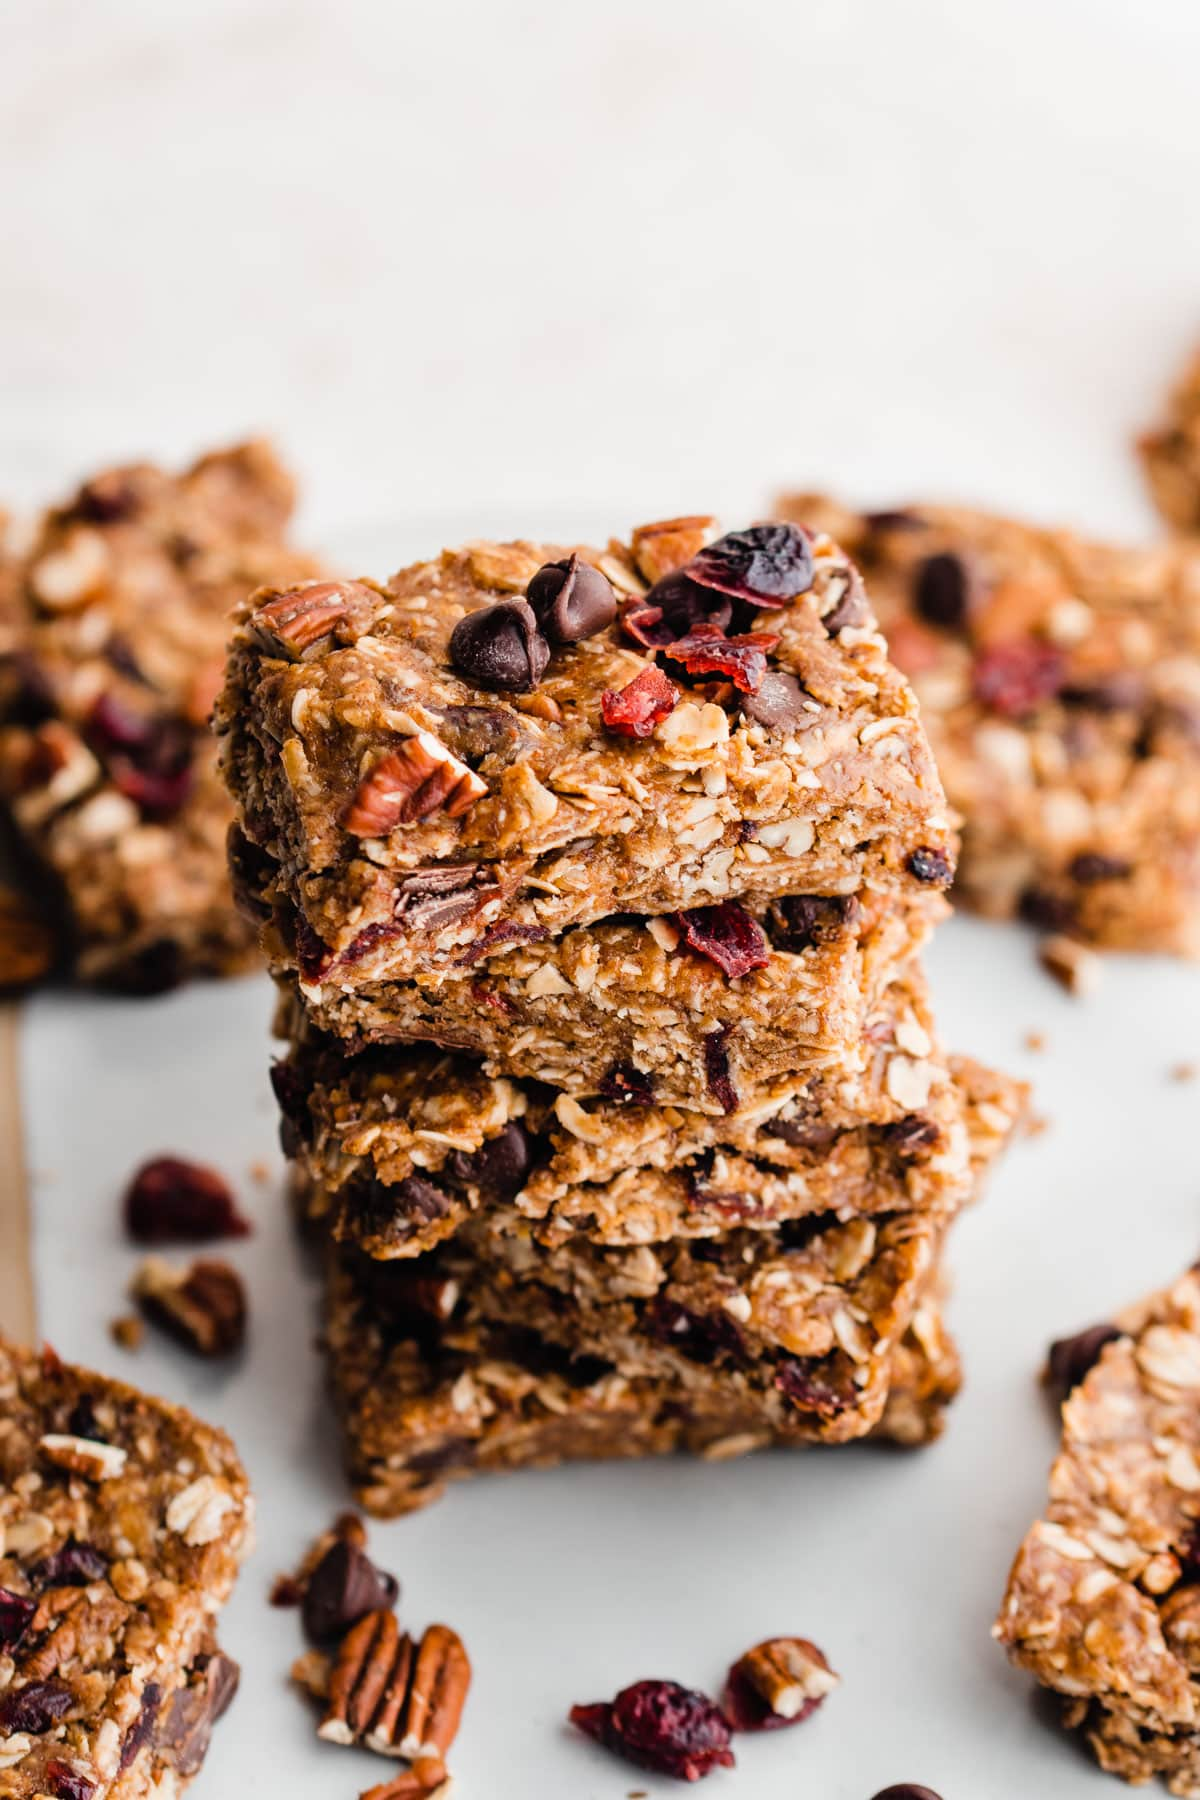 Healthy Salted Chocoalte Almond No Bake Granola Bars made with dates and cocoa. These taste like brownies! Gluten free